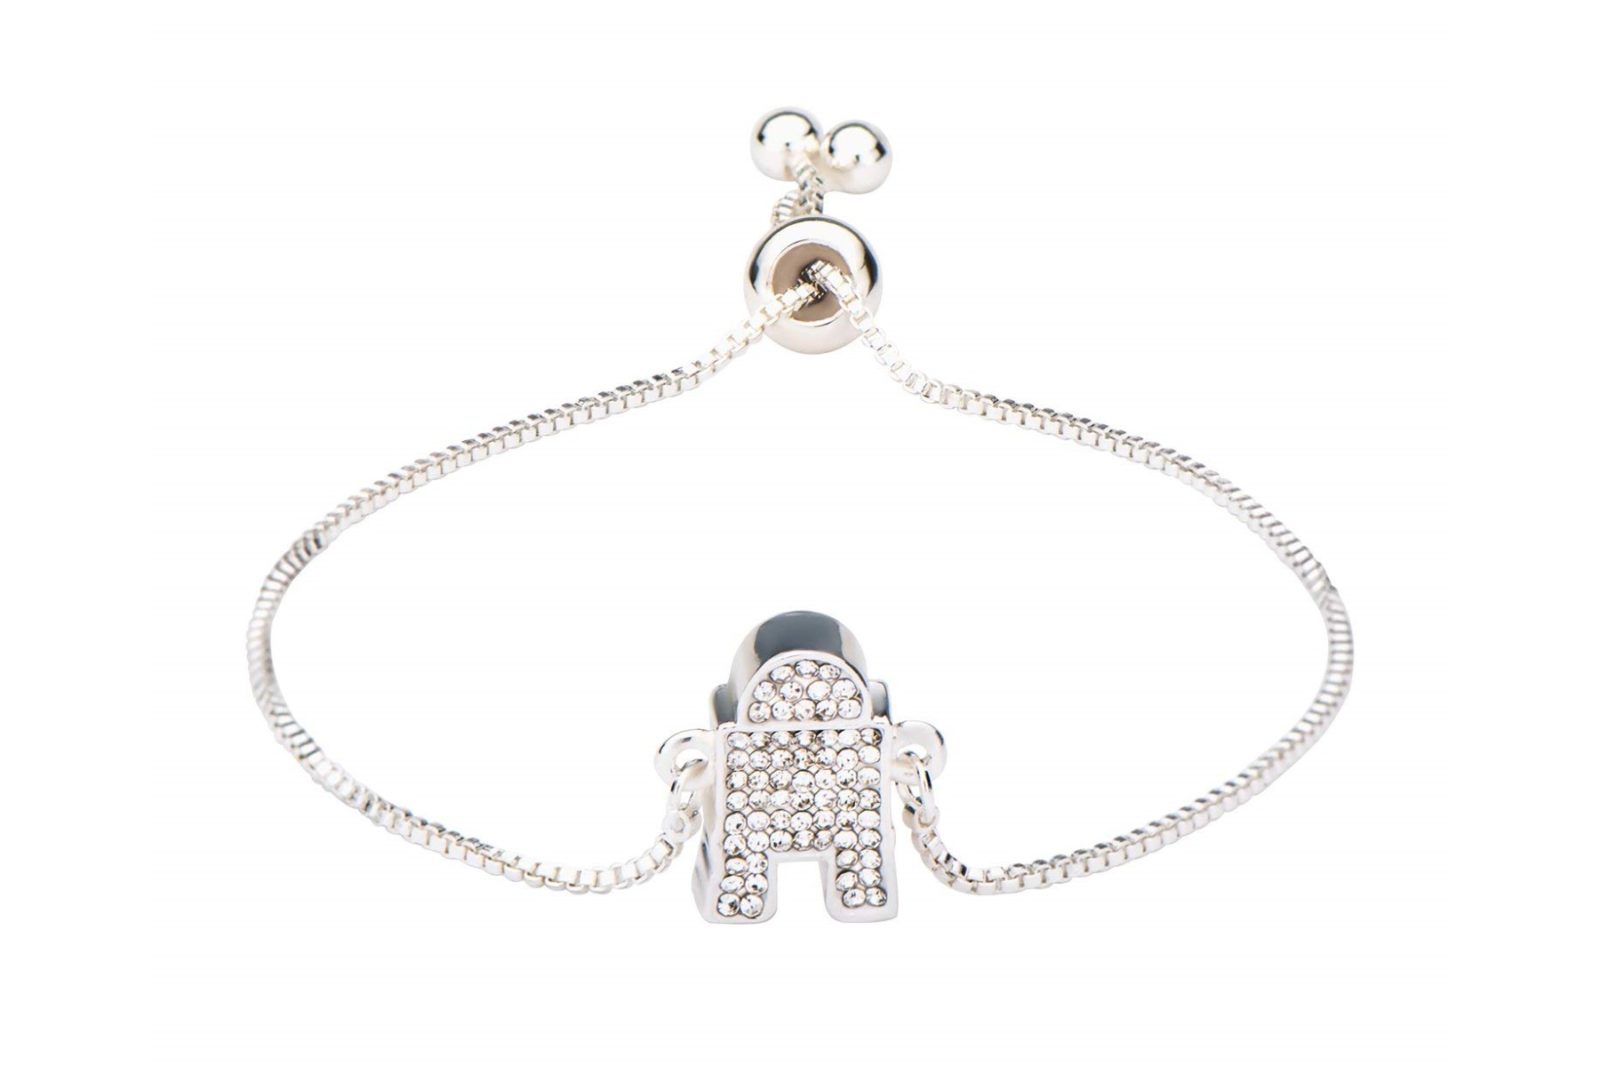 Silver Plated R2-D2 Bracelet on Amazon